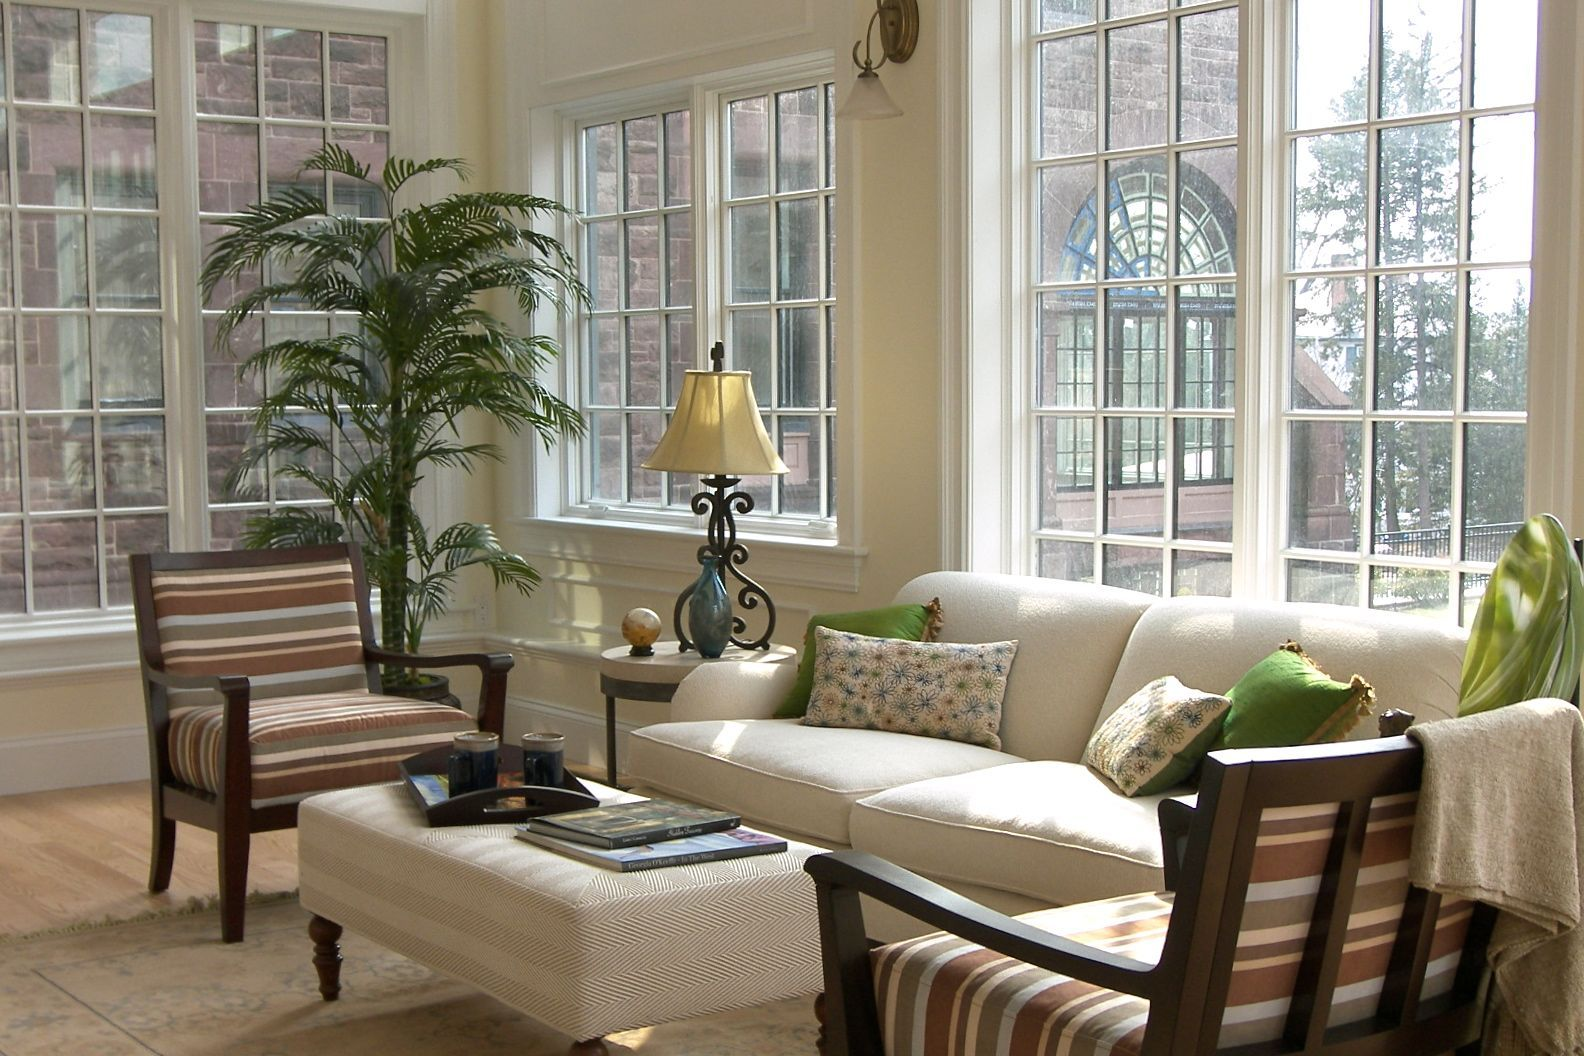 Design With Soft White Sofa And Antique Table Lamp That Have Metal Legs Also Corner Indoor Plant In The Pot For Small Interior Sunroom Decorating Ideas